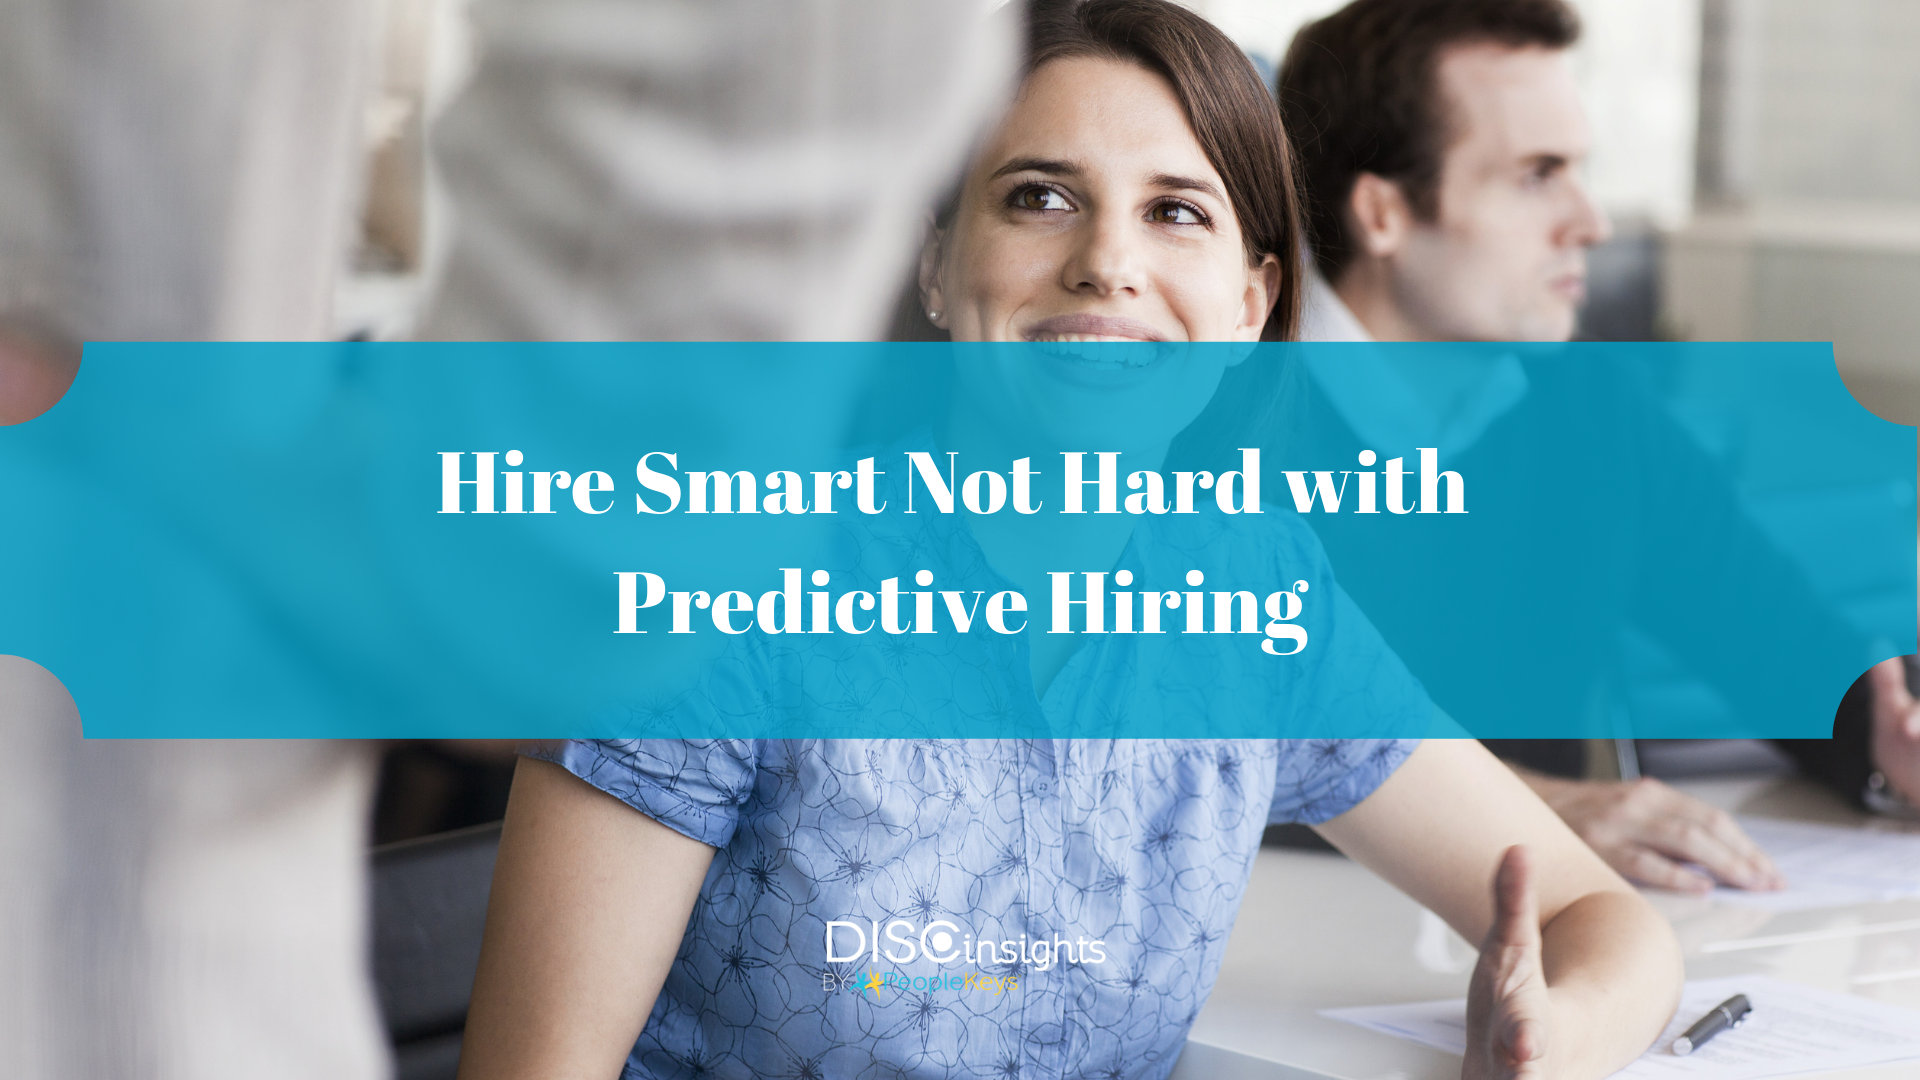 Hire Smart, Not Hard with Predictive Hiring